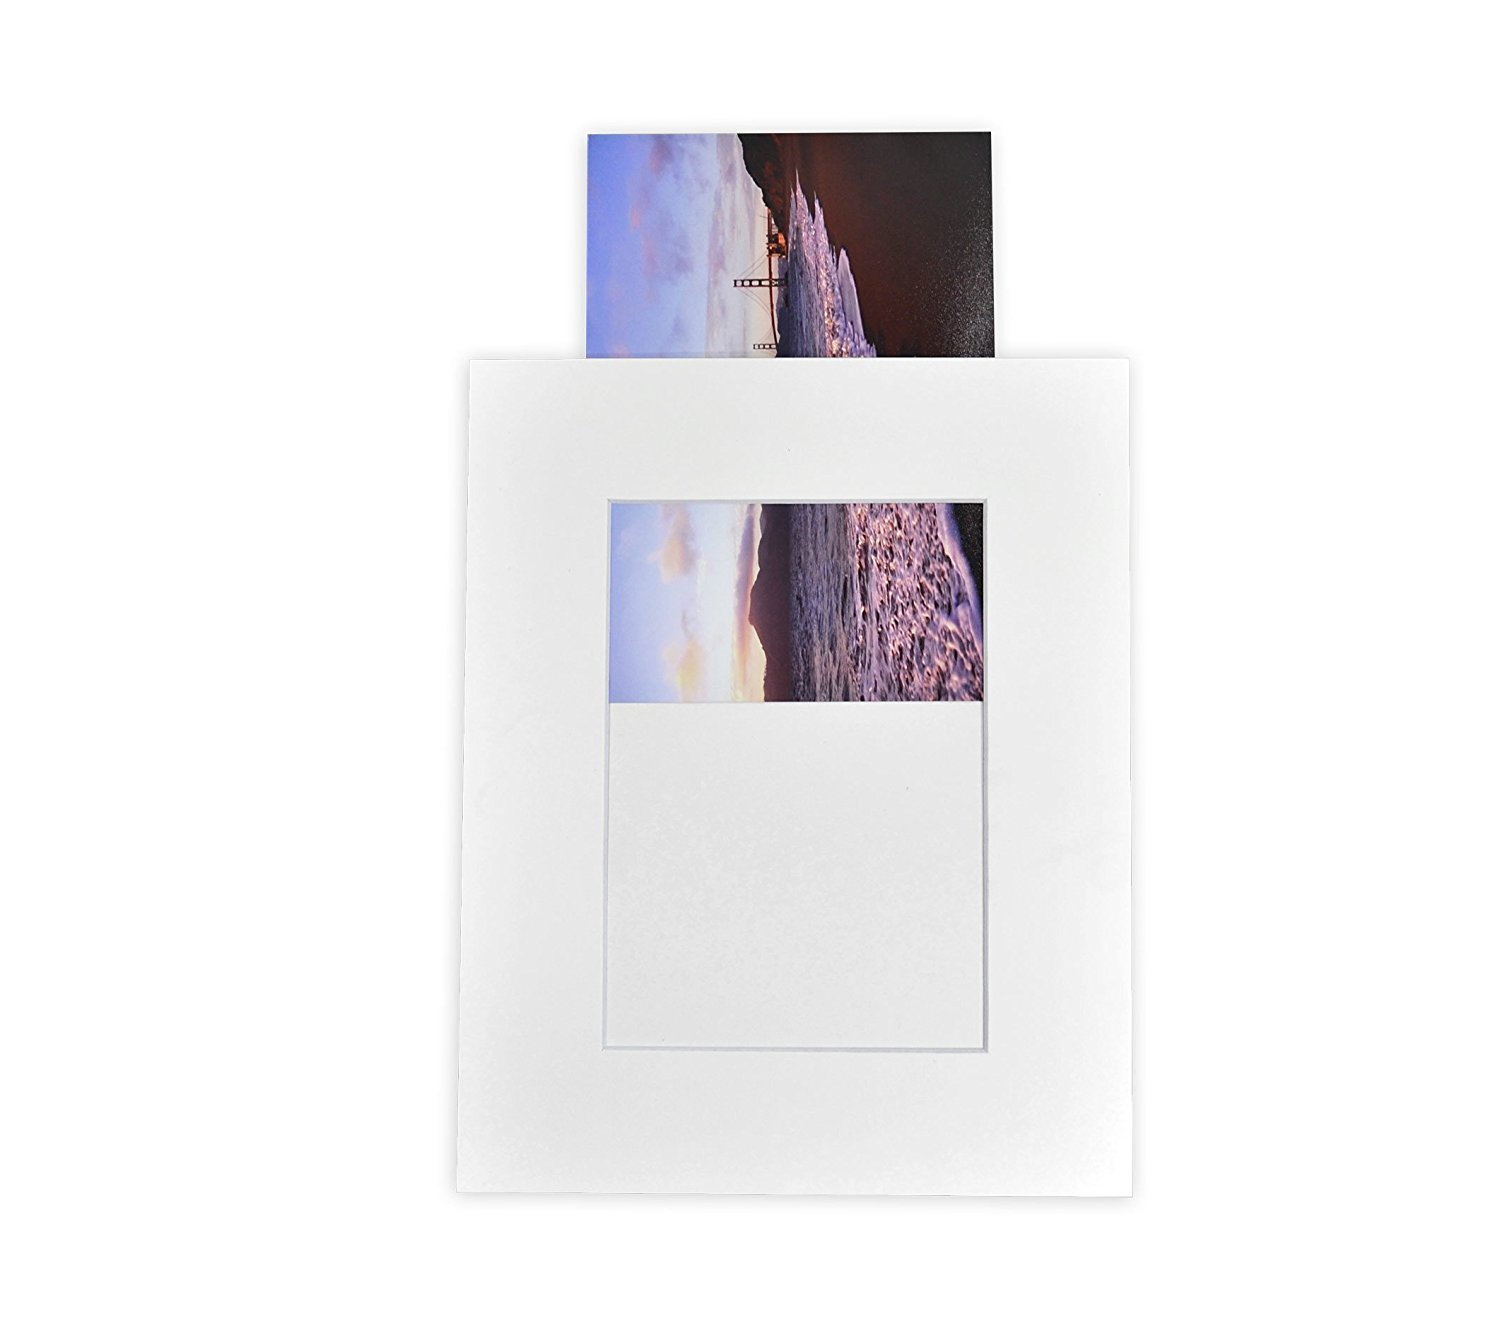 Golden State Art, Acid-Free Cardboard Frames,Pack of 10 White 8x10 Slip in Mats for 5x7 Photo Pre-Adhesive with Backing Board,Paper Frames for Picture Holder,Includes 10 Clear Bags by Golden State Art